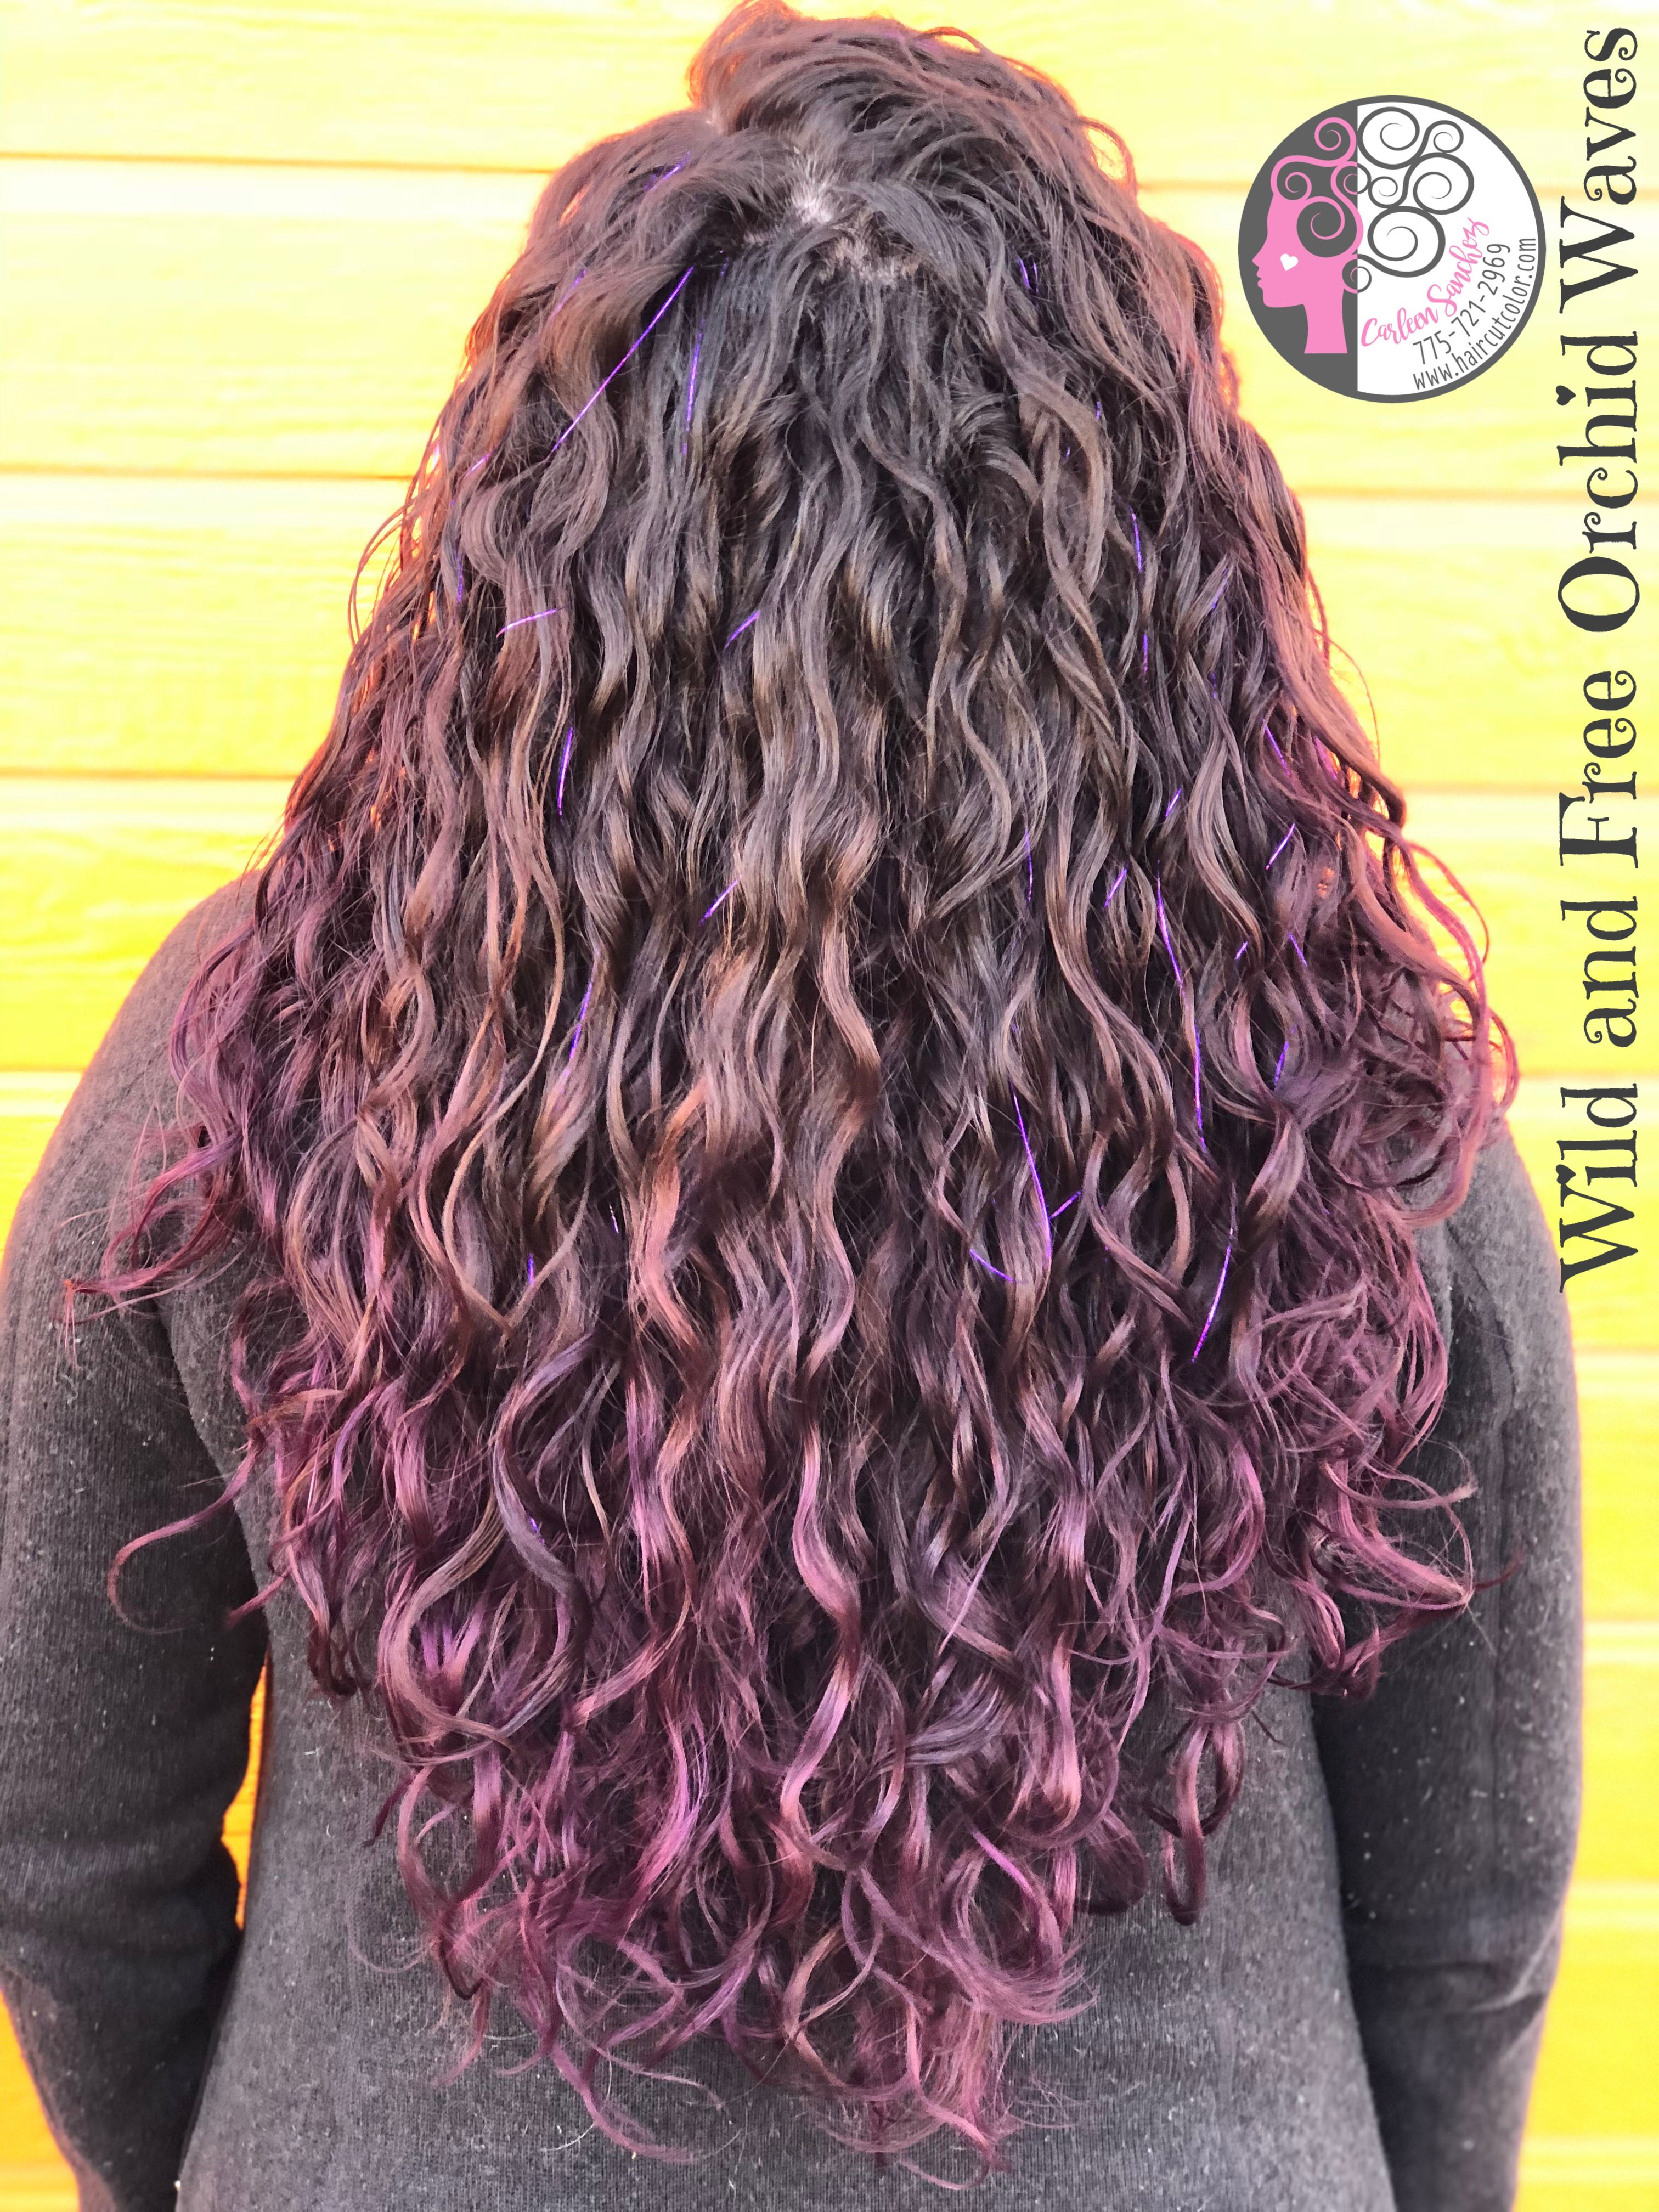 Temporary Wild Orchid Purple Naturally Curly Mermaid Hair By Carleen Sanchez Nevada S Curly Hair And Color Expert Mermaid Hair Hair Naturally Curly